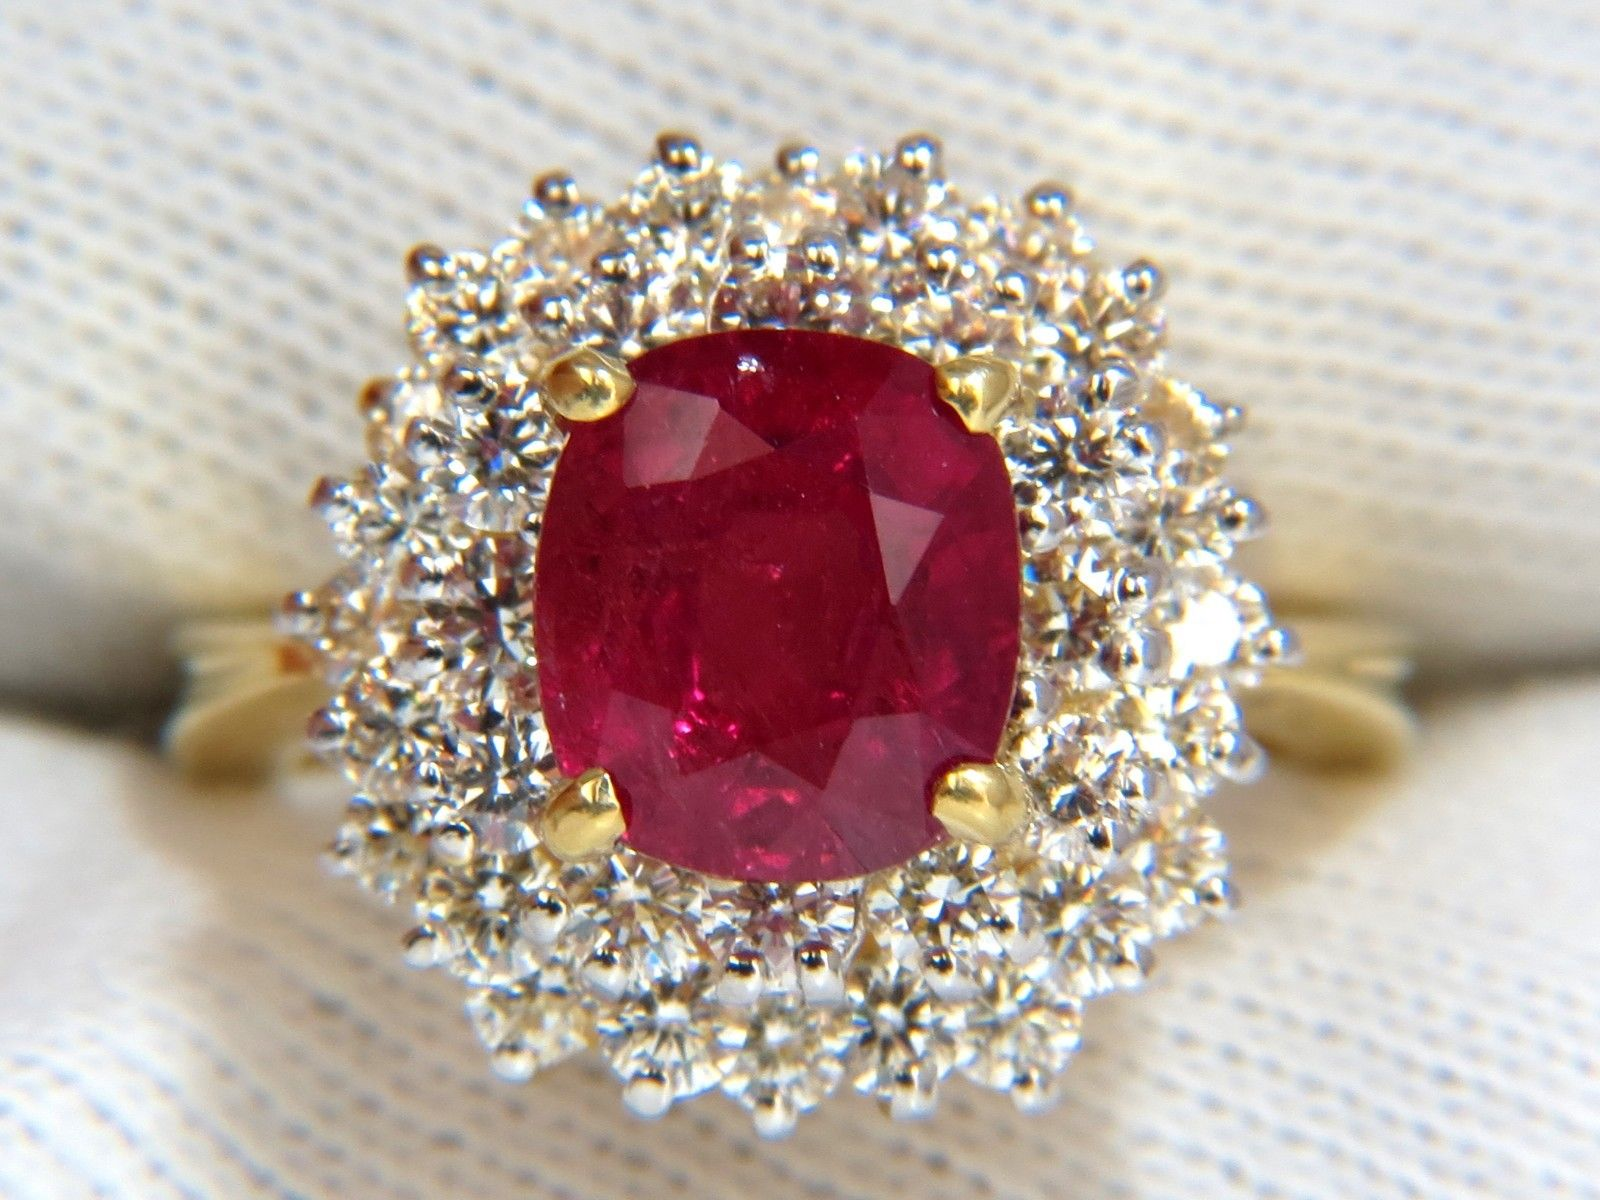 Vintage Gold Diamond Tail Ring 2 00ct Ruby 60ct Solid Yellow Natural Certified